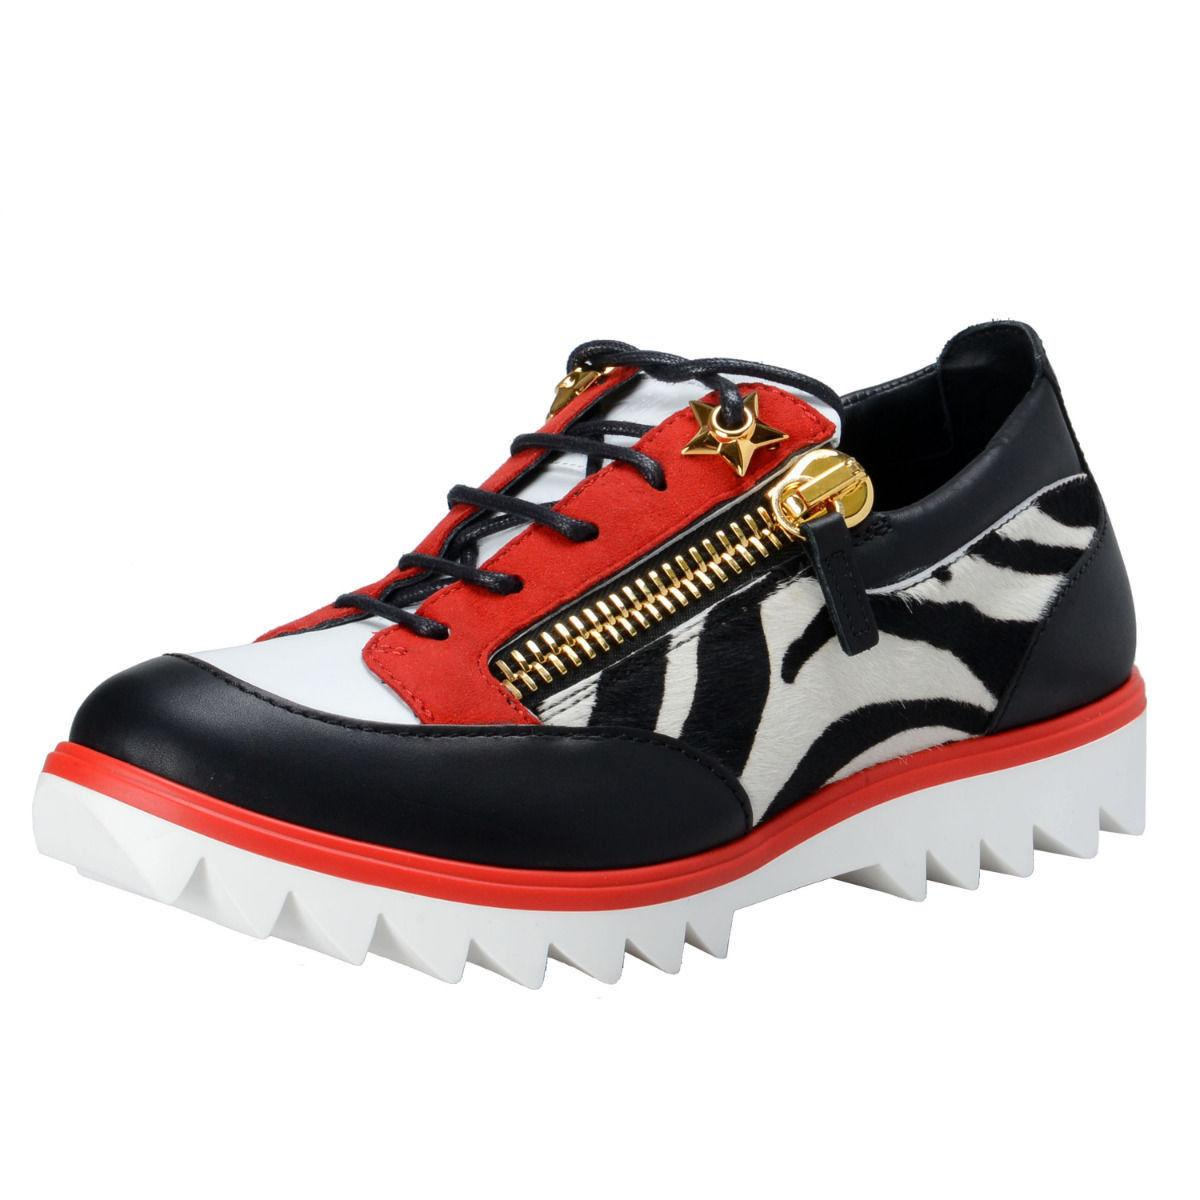 bc49c602d373 Gentleman Lady-Giuseppe Zanotti Multi-color Women s Pony Hair Fashion Sneakers  Sneakers Size